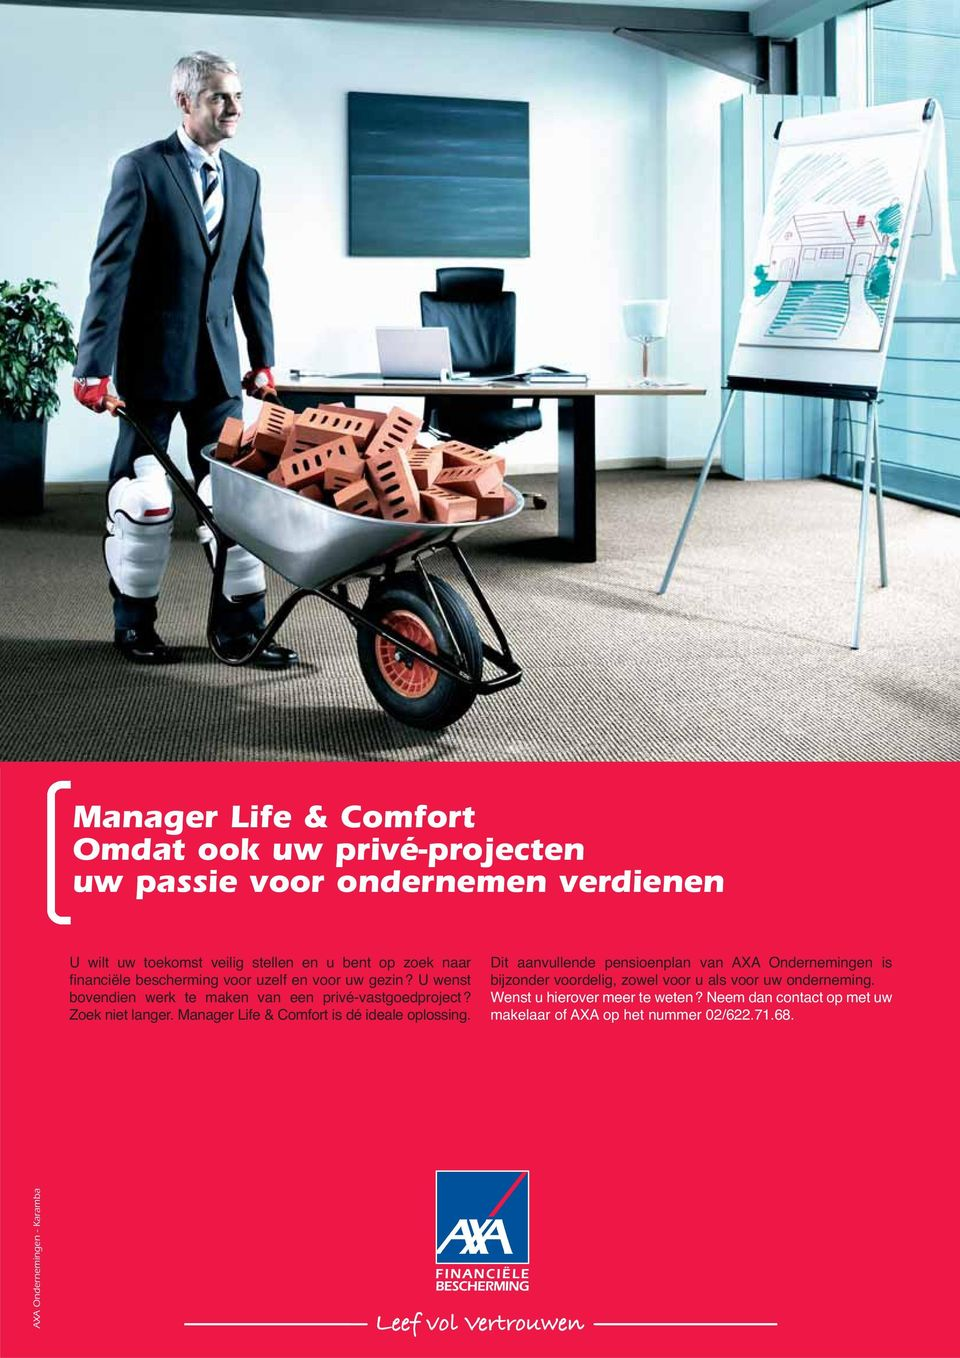 Manager Life & Comfort is dé ideale oplossing.